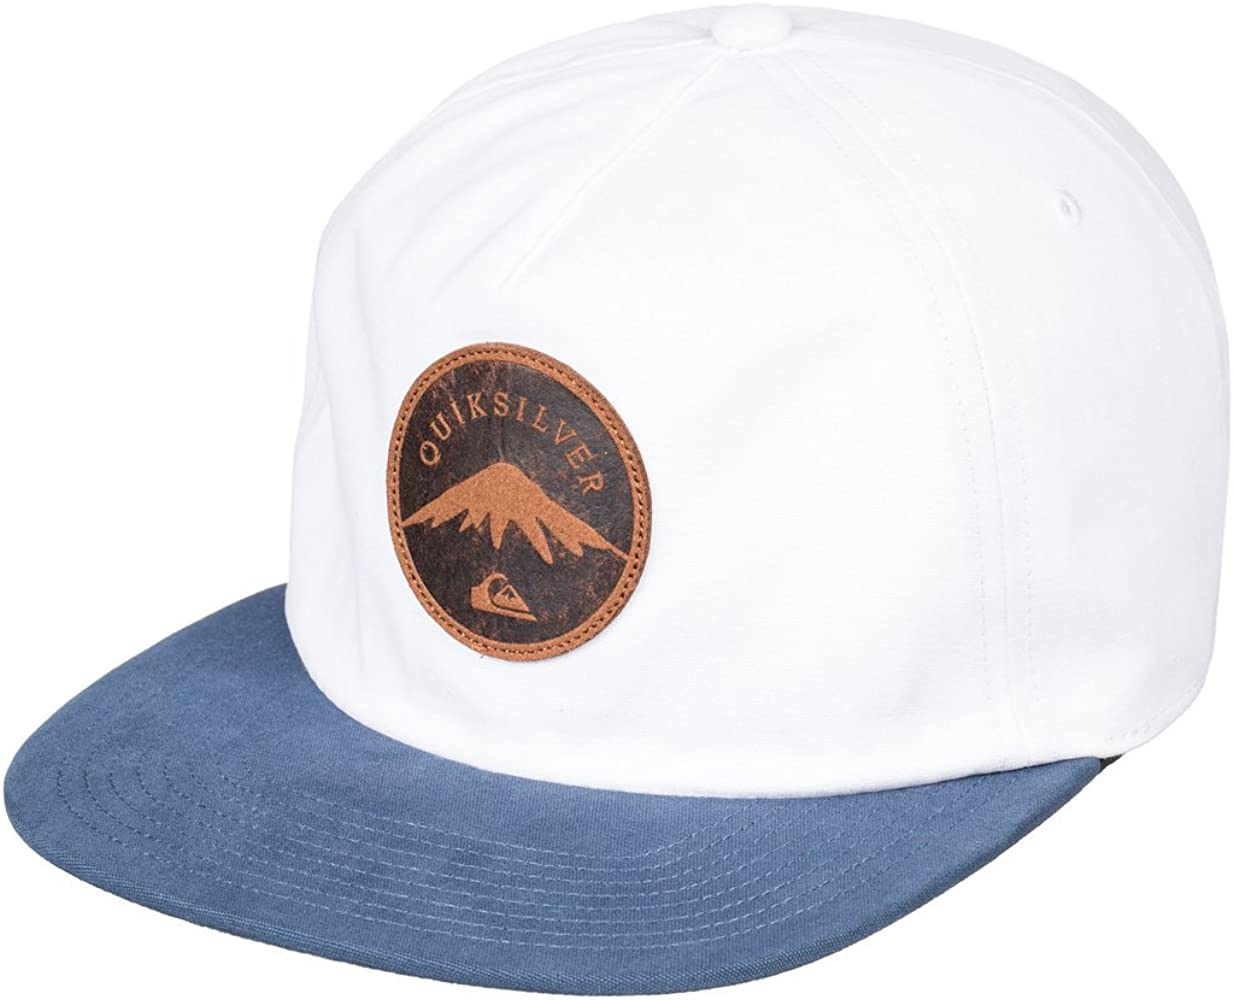 Quiksilver - Gorra Ajustable - Hombre - One Size - Blanco: Amazon ...